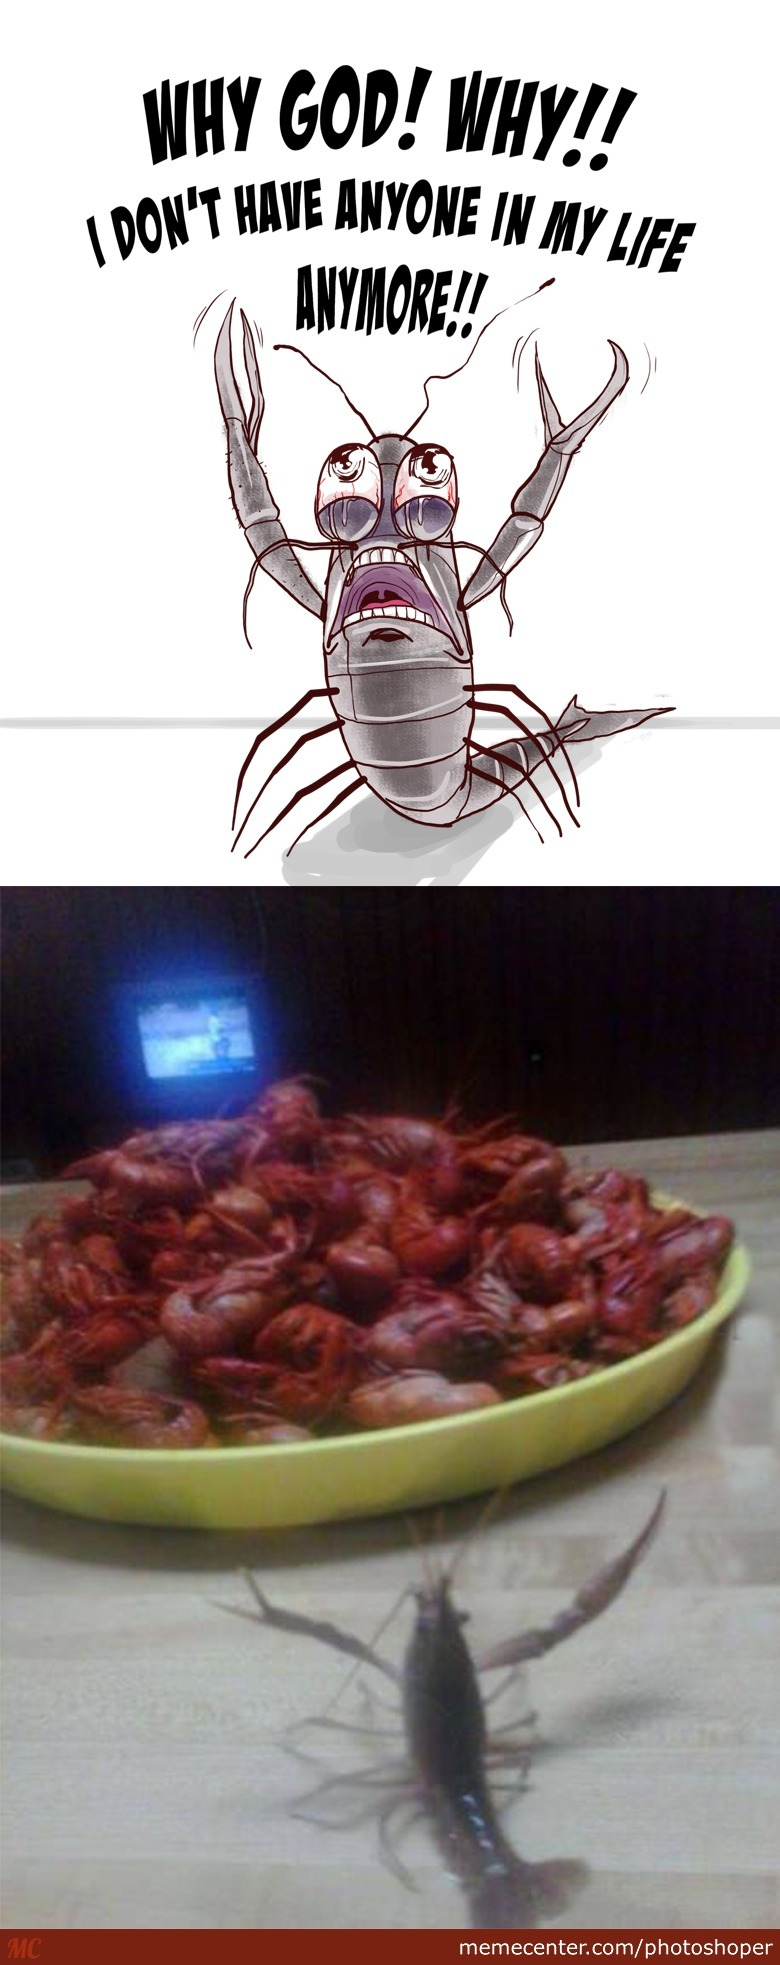 Shrimp Holocaust